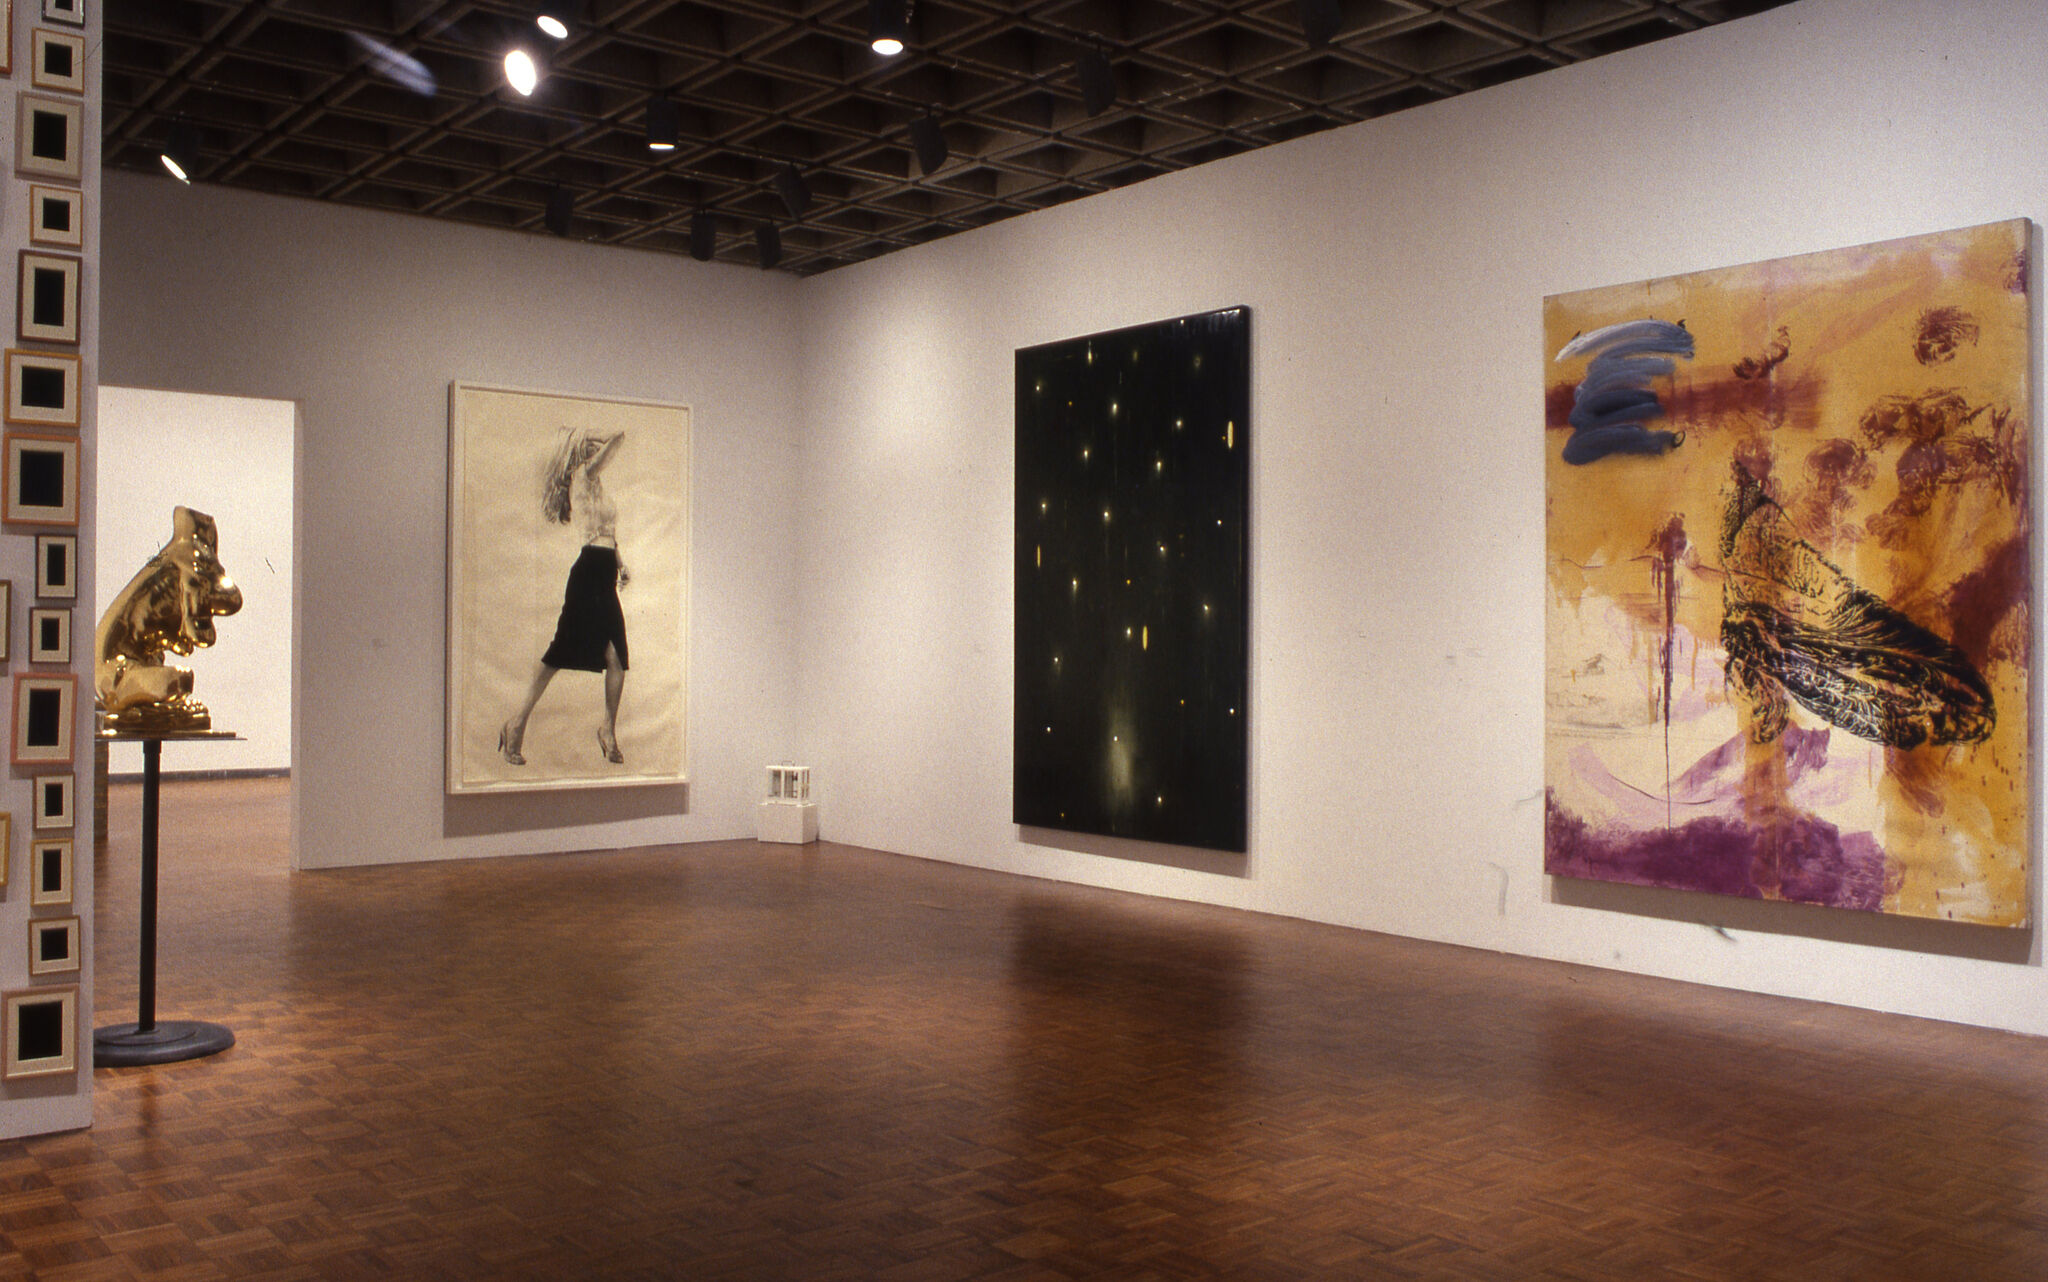 A gold sculpture and three paintings displayed in a gallery.